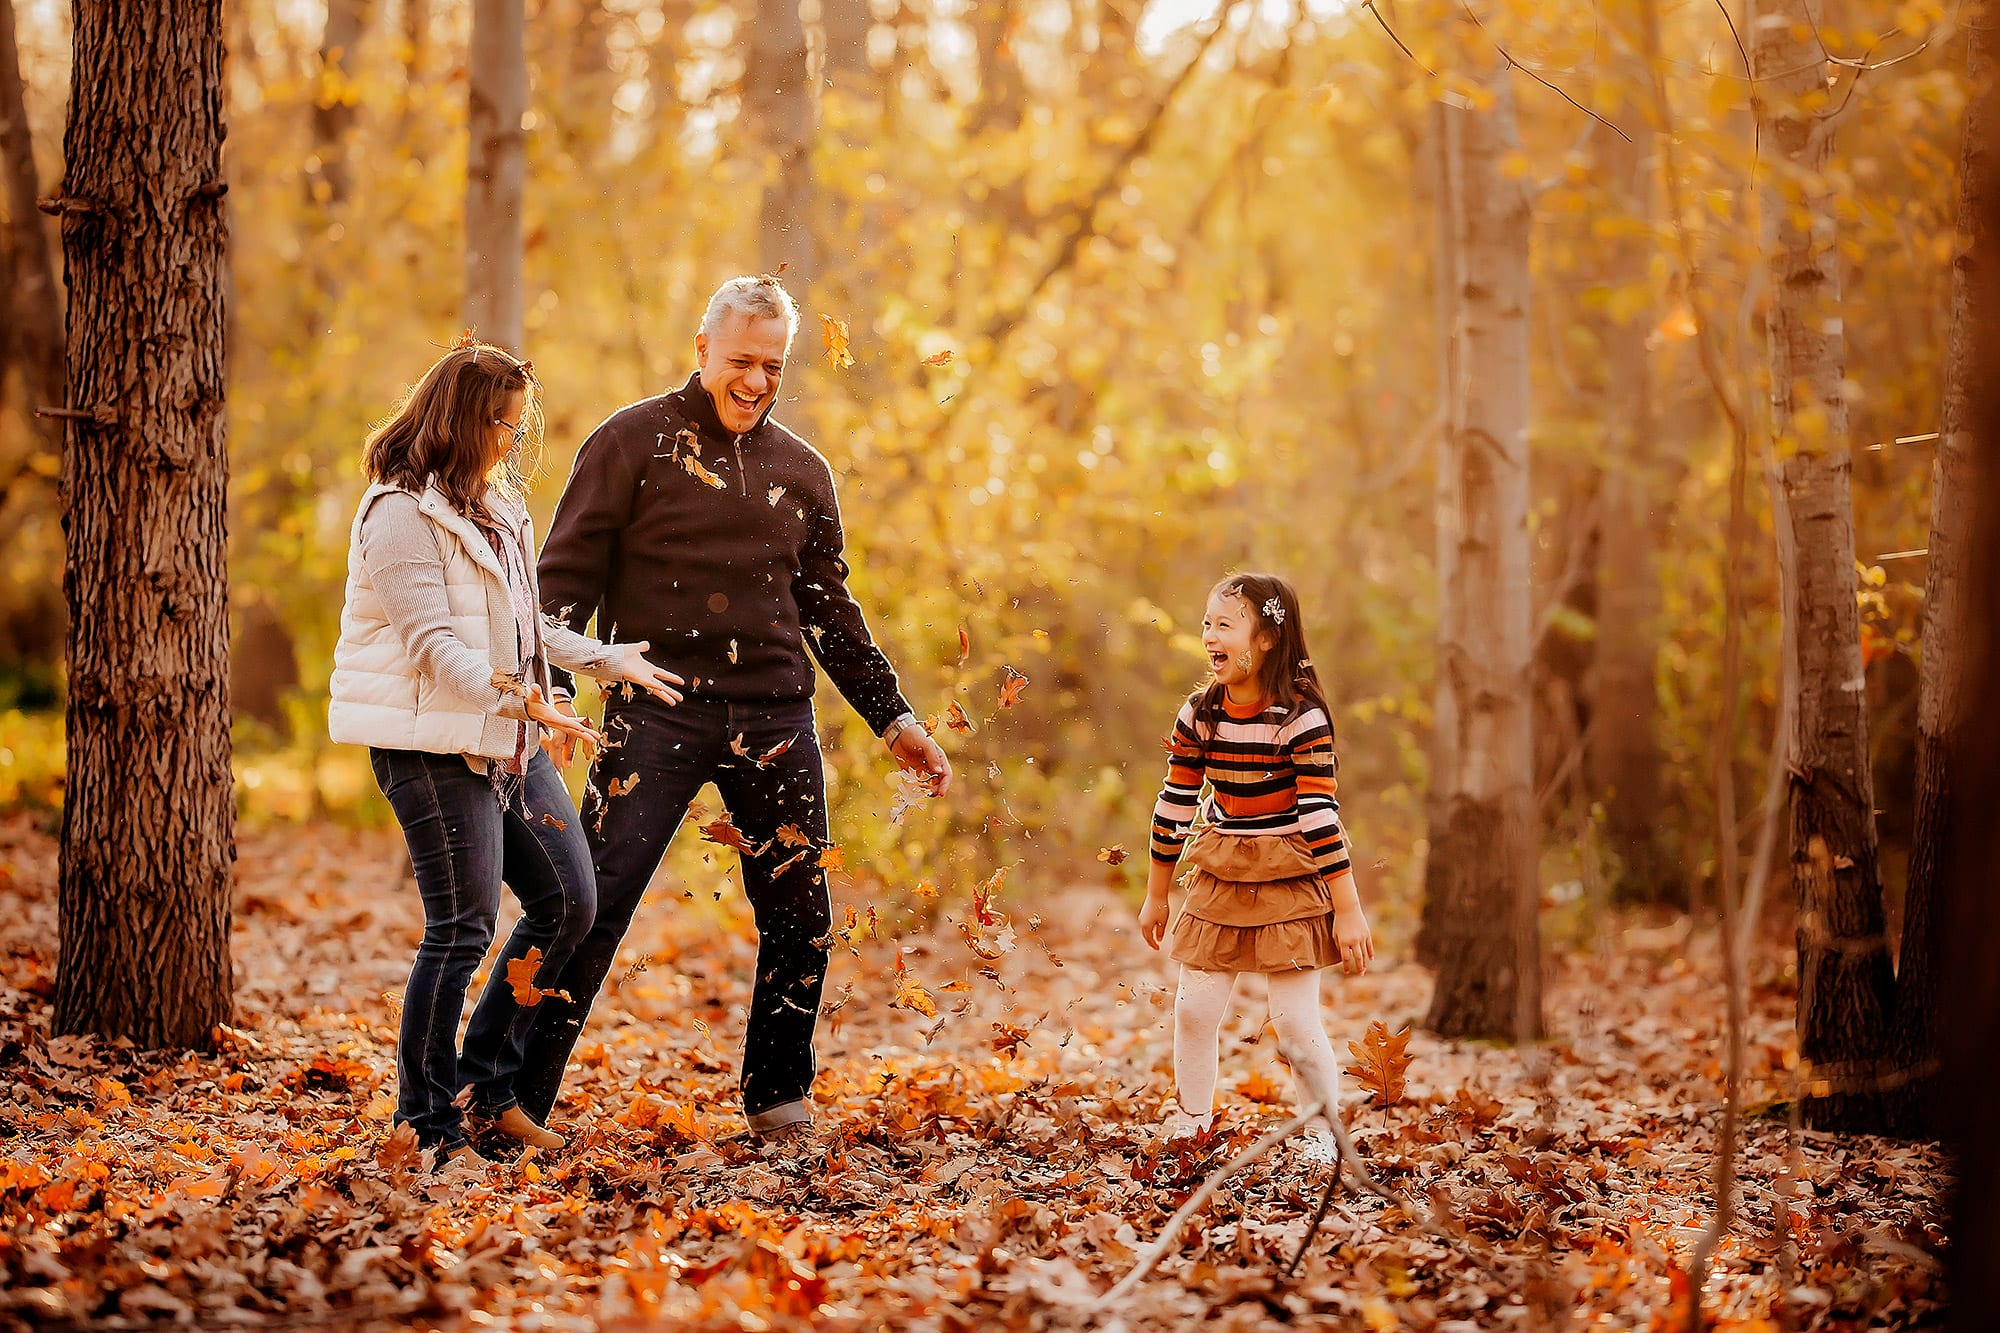 Family playing in autumn leaves